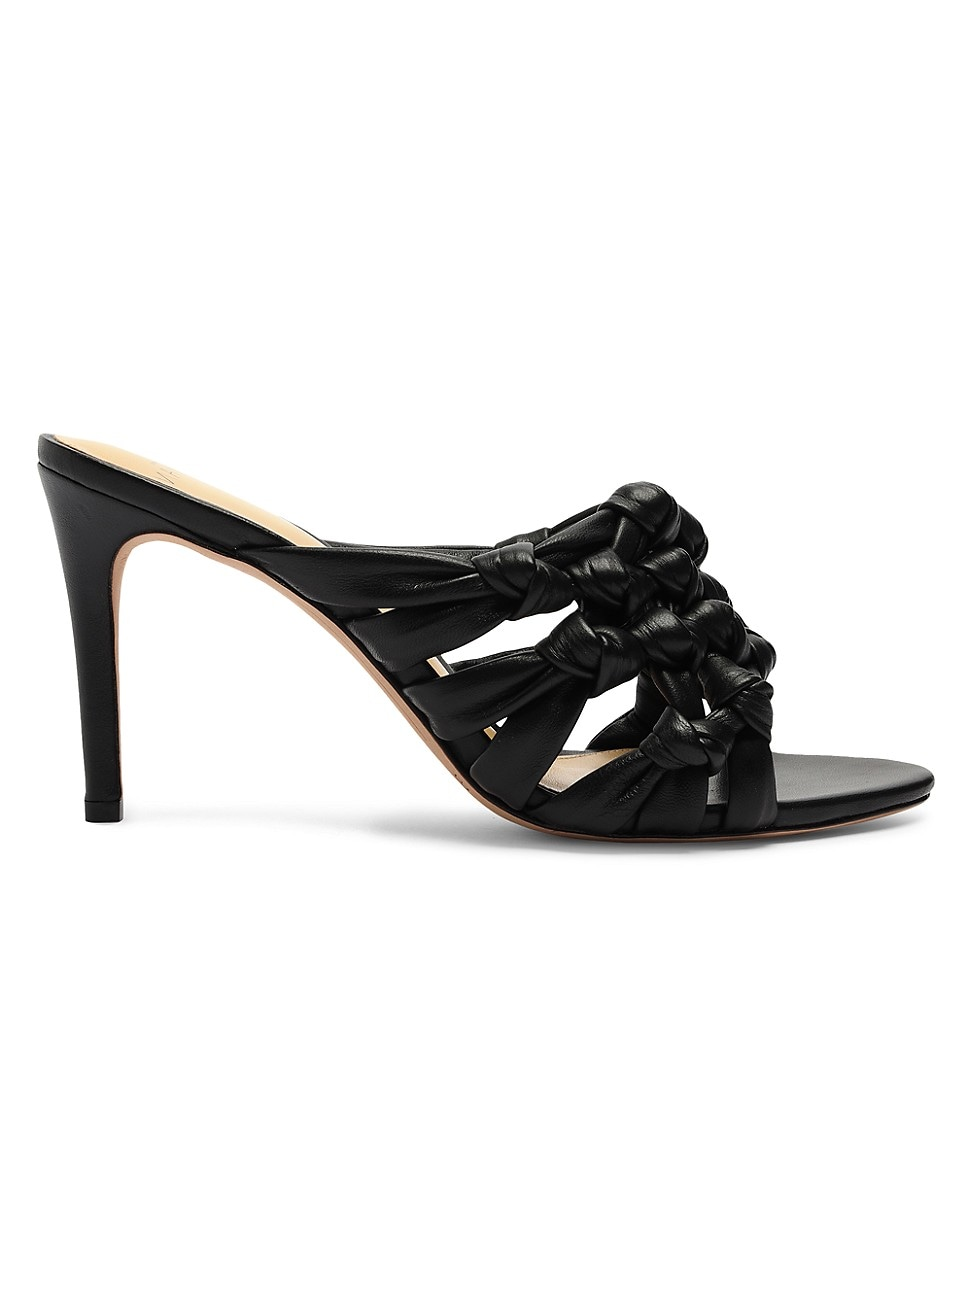 Alexandre Birman WOMEN'S SOLANGE INTRECCIO LEATHER MULE SANDALS